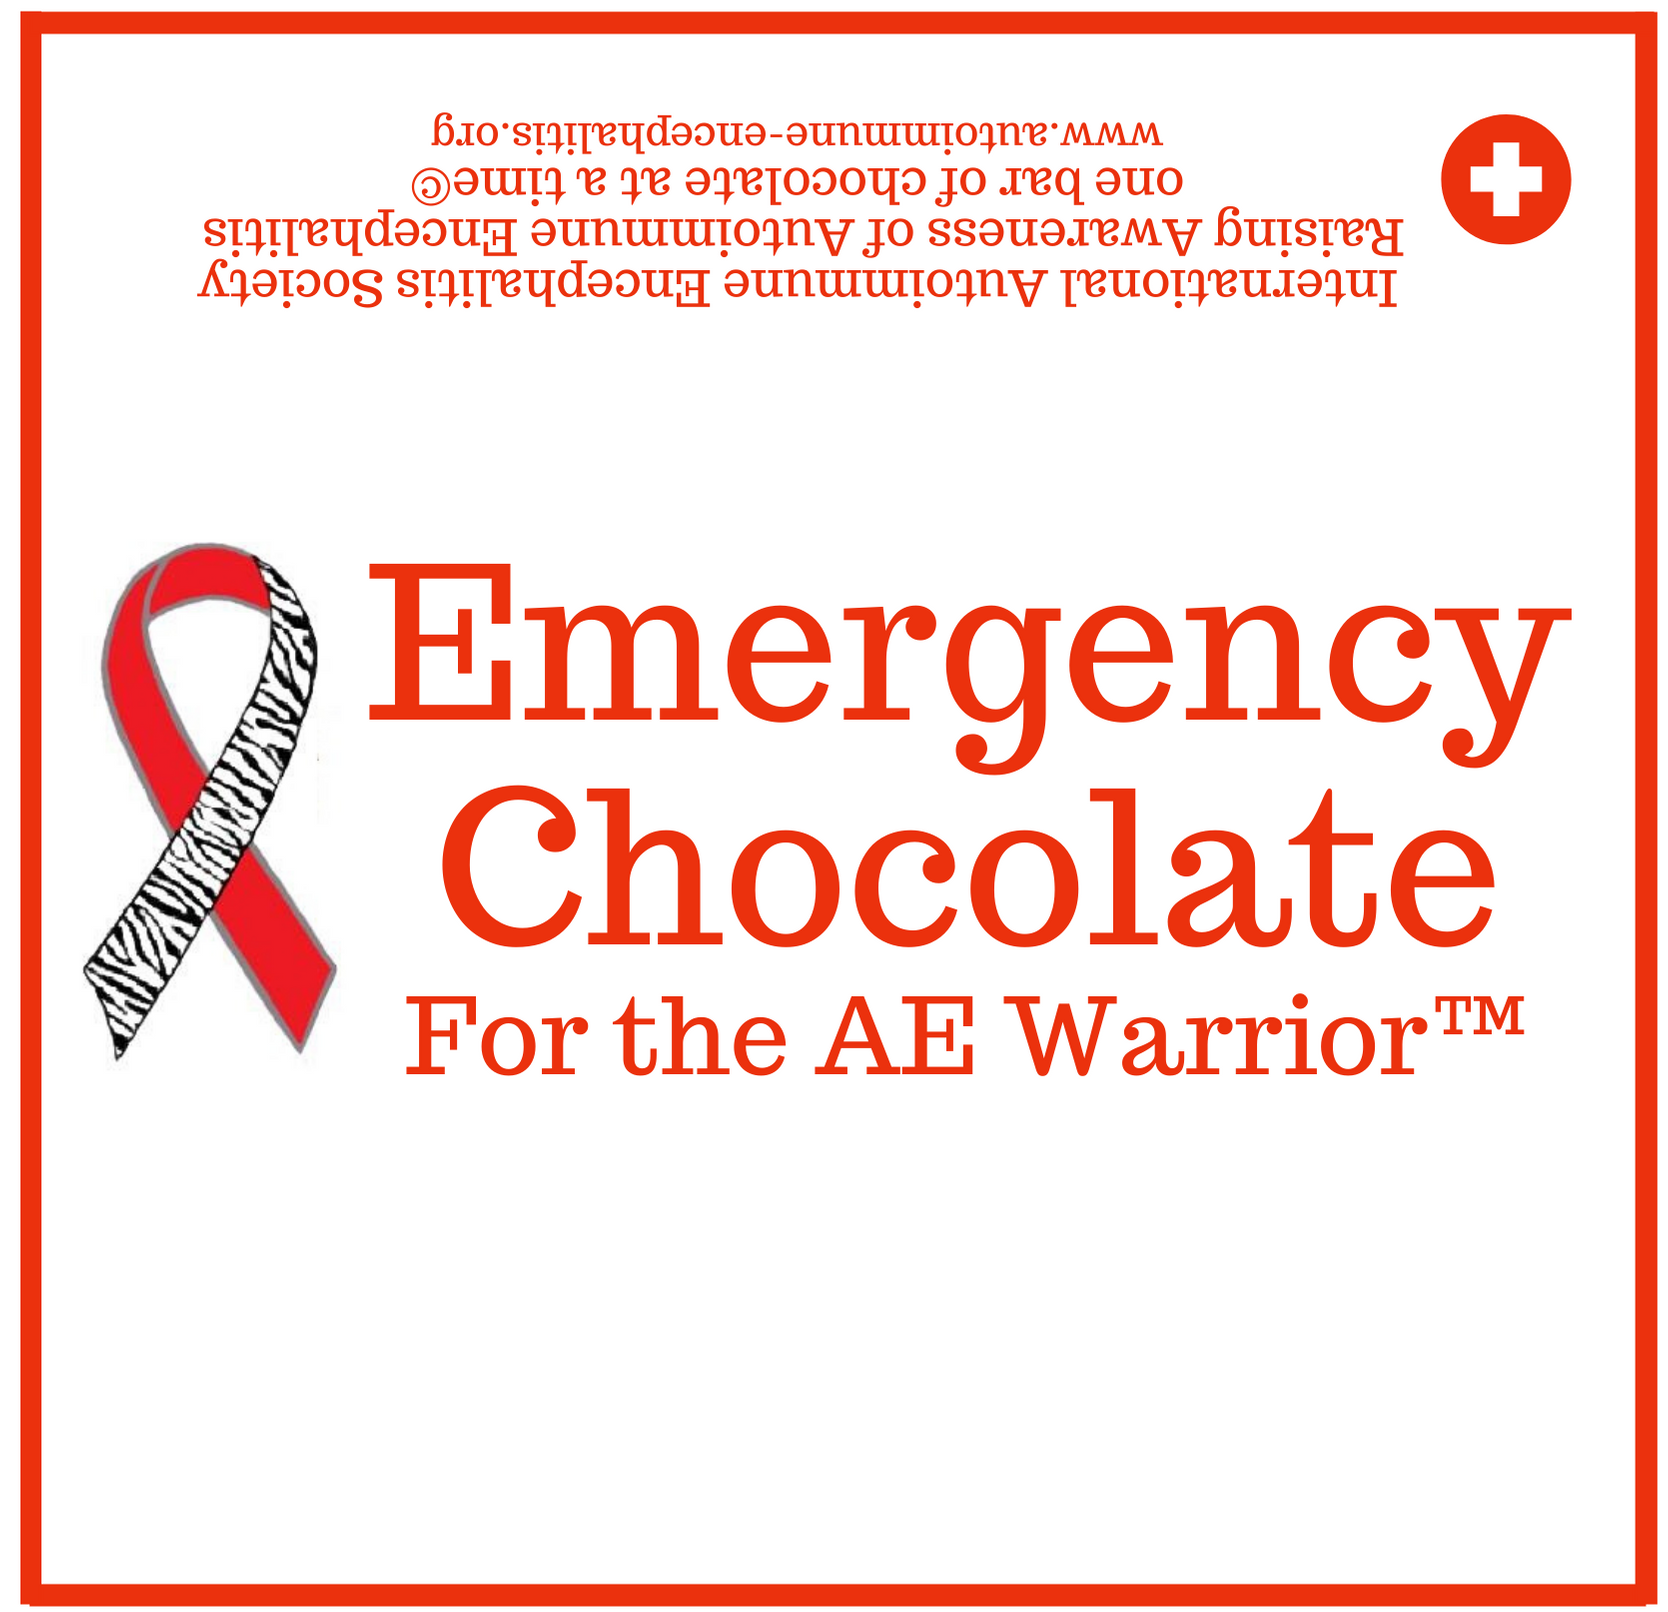 Emergency Chocolate for the AE Warrior  Candy Wrapper 5 9 16  x 5 3 8  1 - Downloads